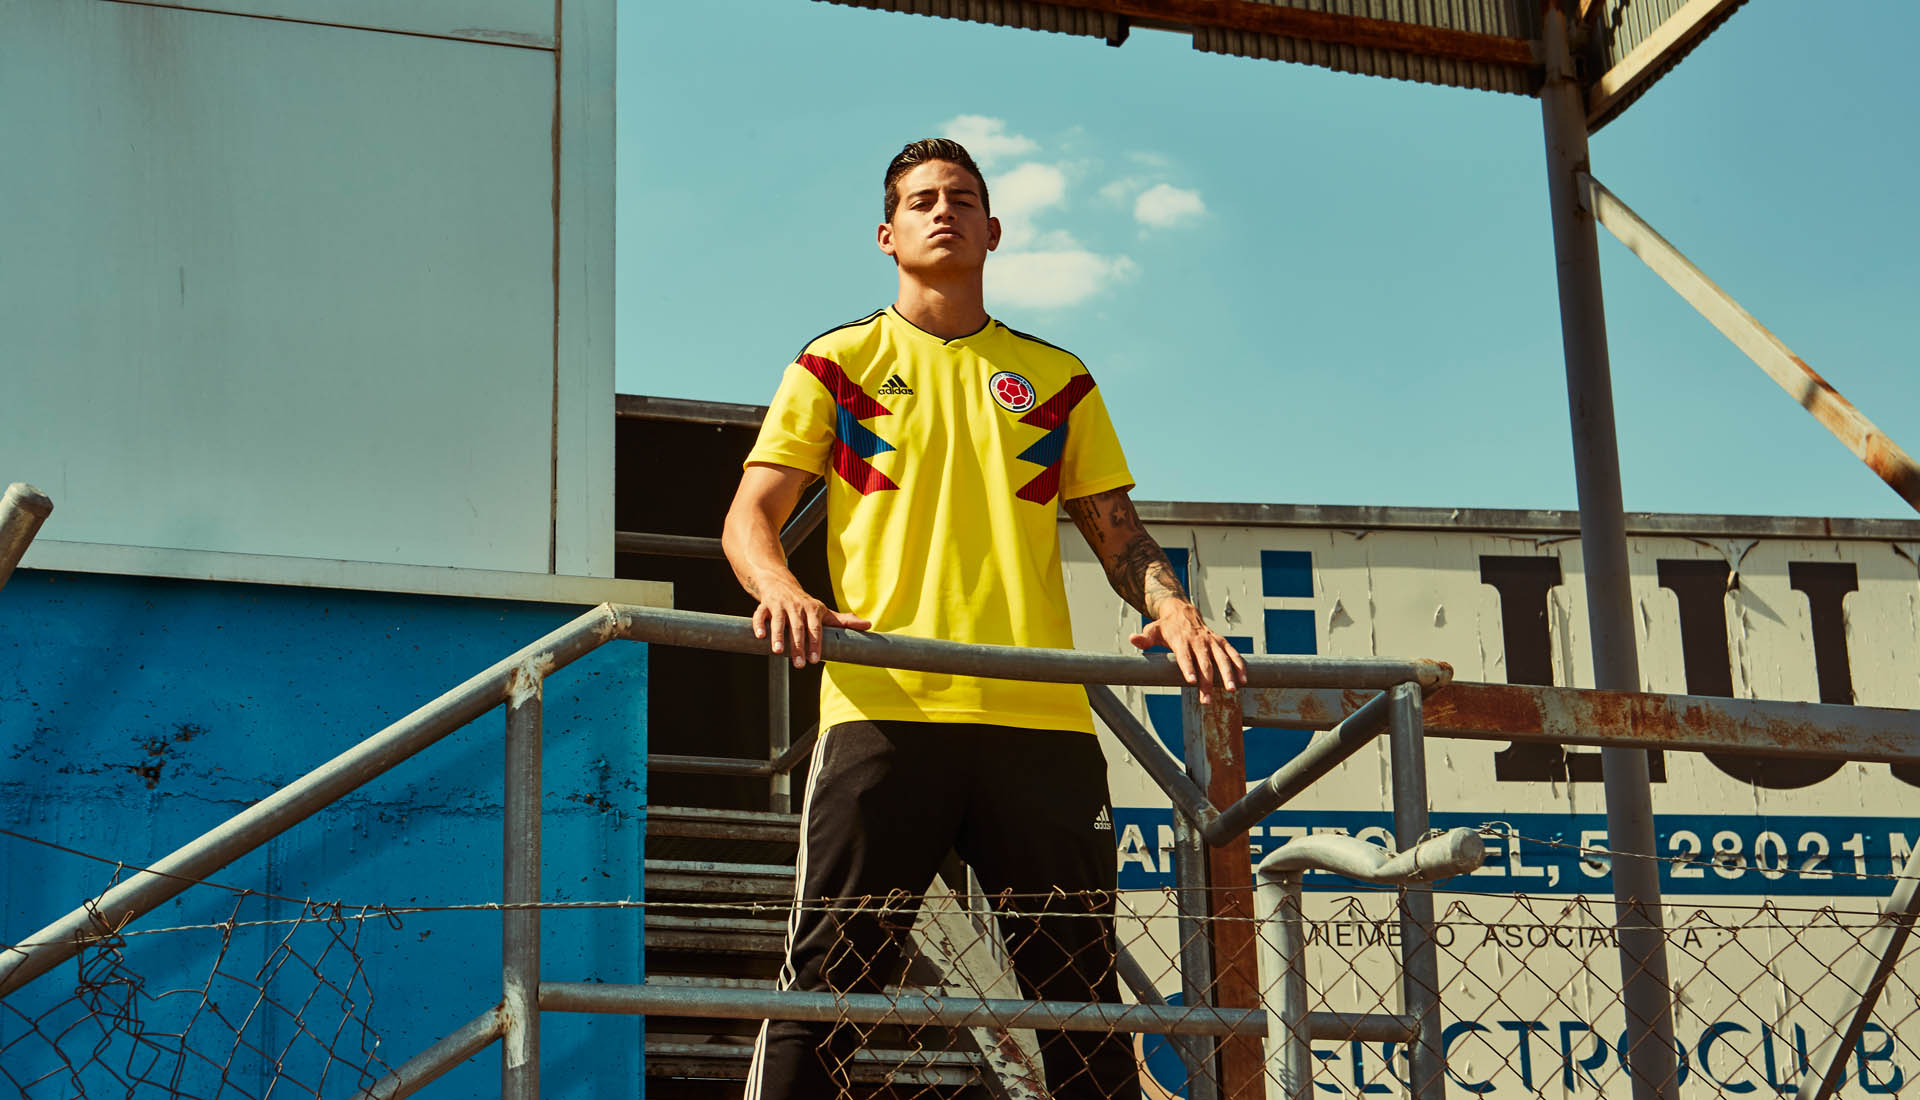 Colombia World Cup Shirt 2018 adidas SoccerBible_0004_JAMES_12774.jpg